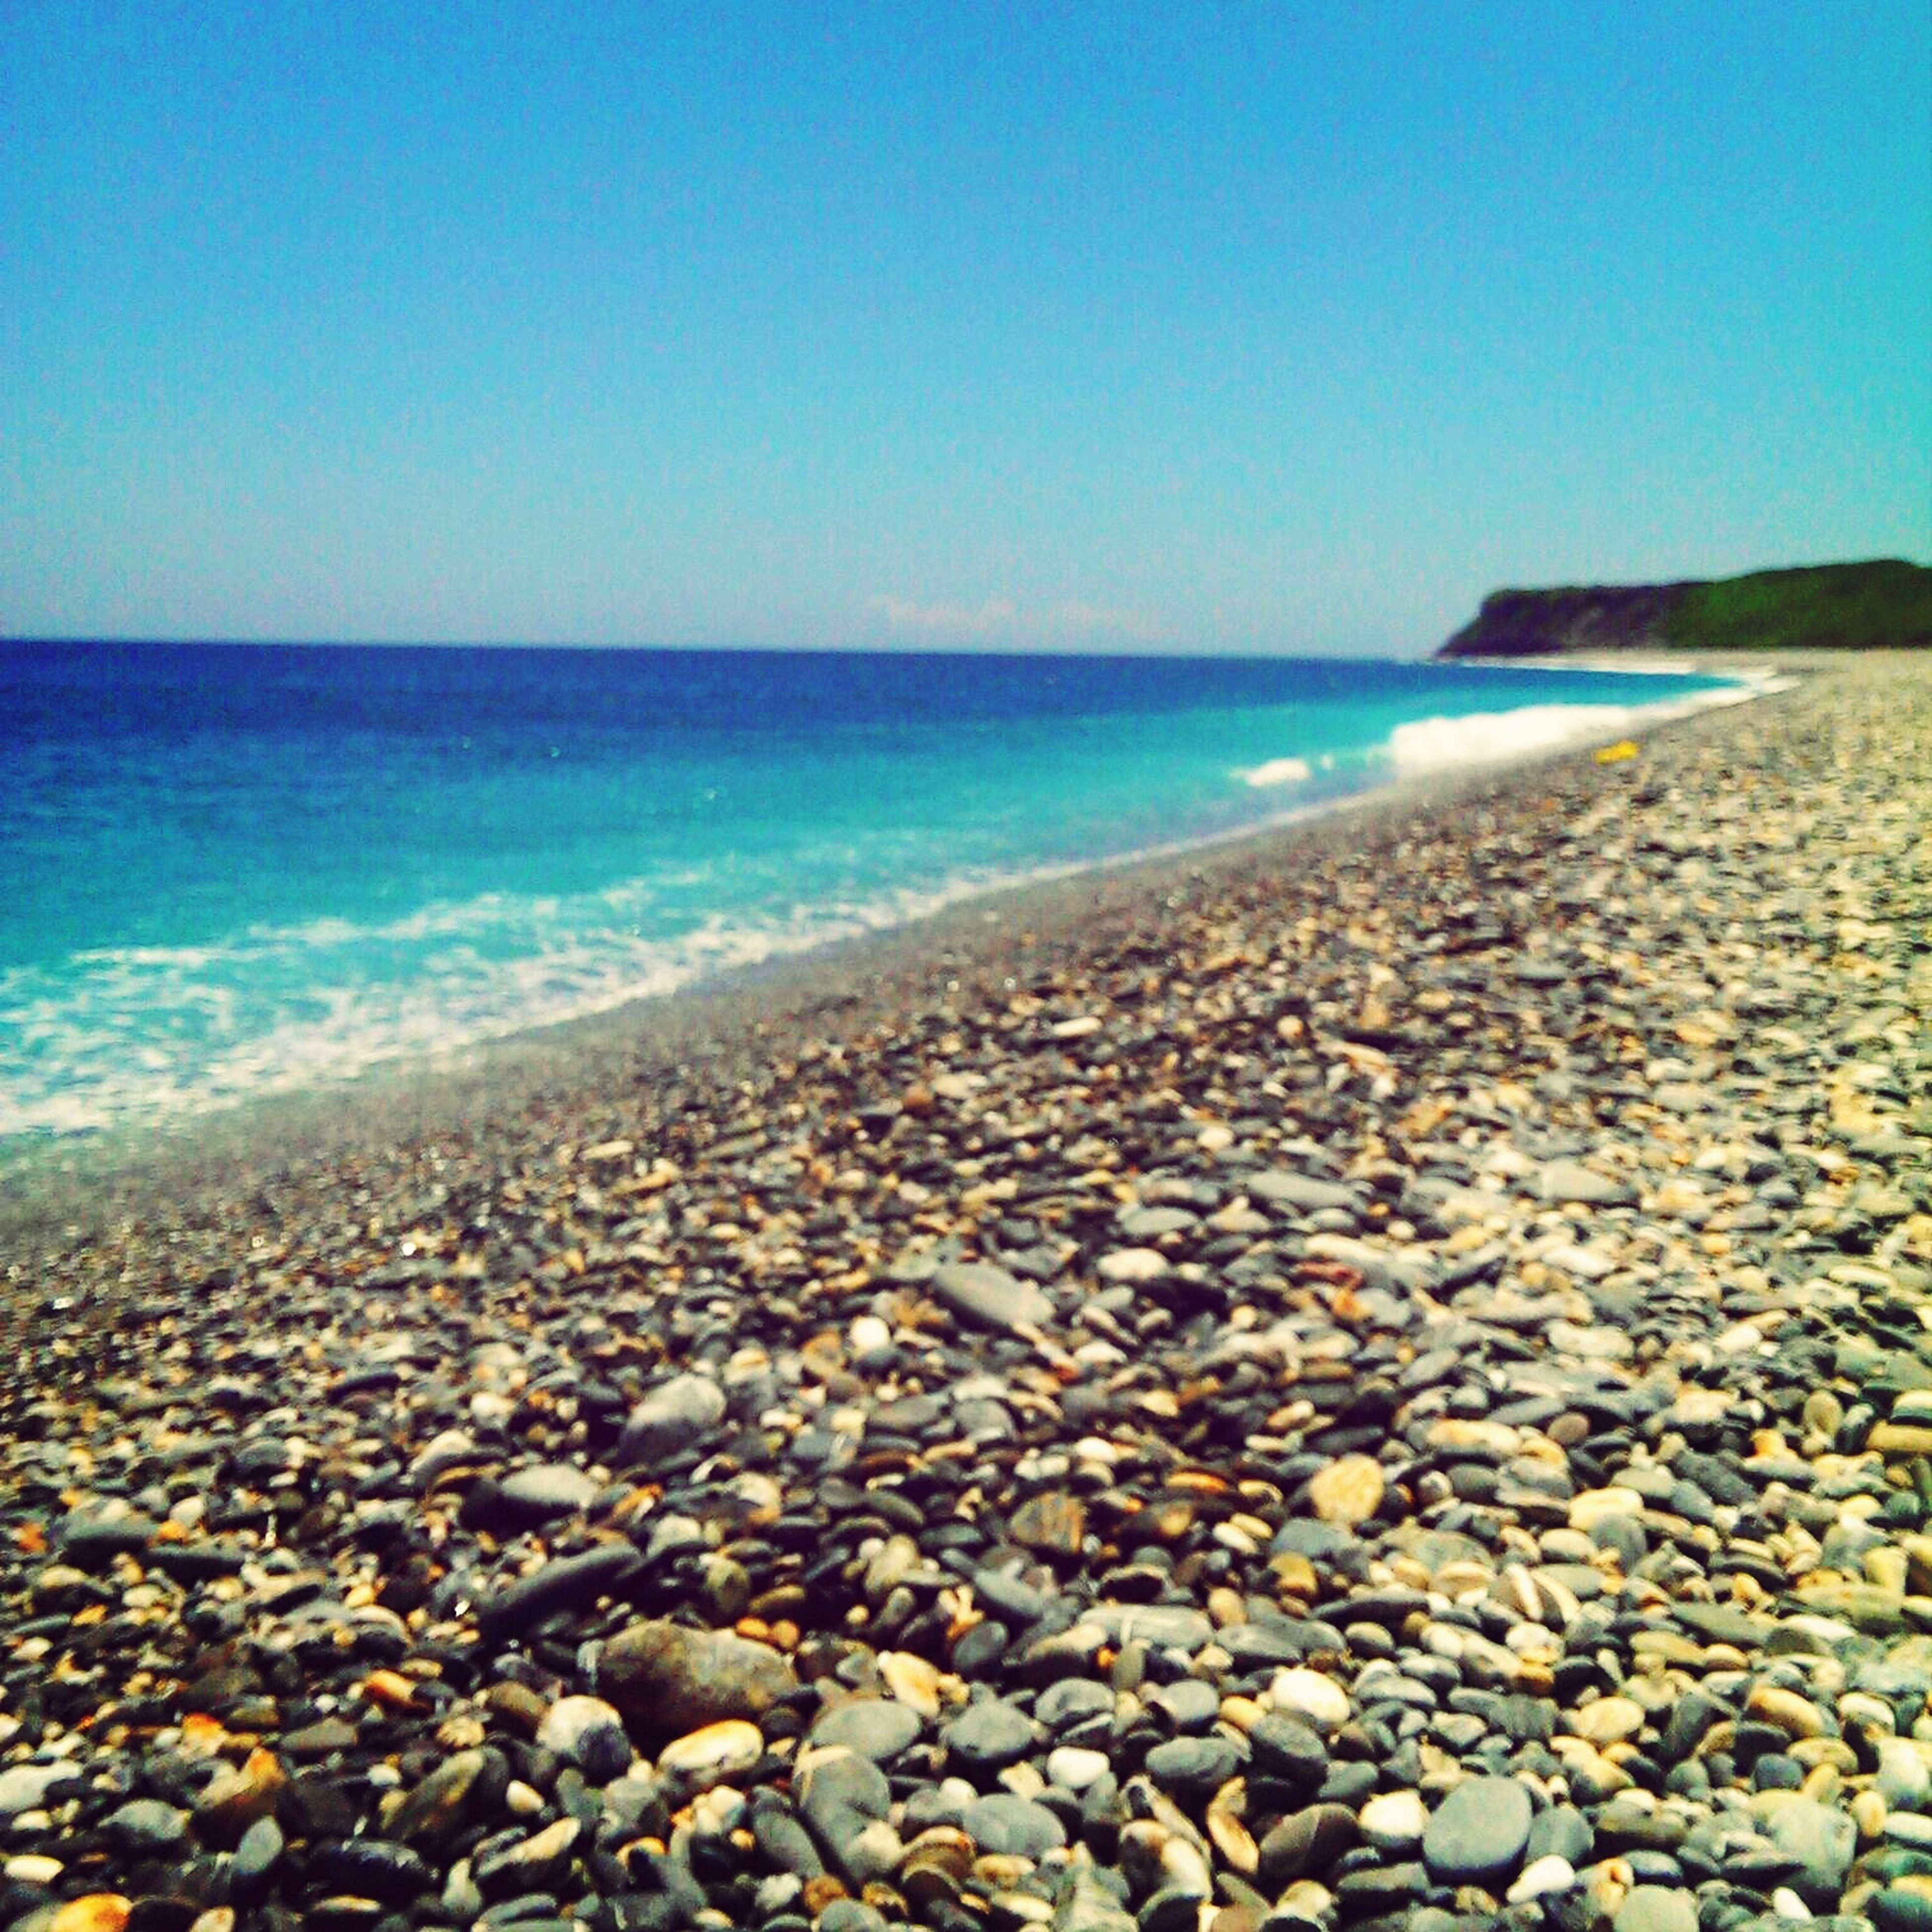 sea, horizon over water, water, beach, clear sky, scenics, shore, tranquil scene, tranquility, beauty in nature, blue, pebble, copy space, stone - object, nature, rock - object, idyllic, sky, coastline, seascape